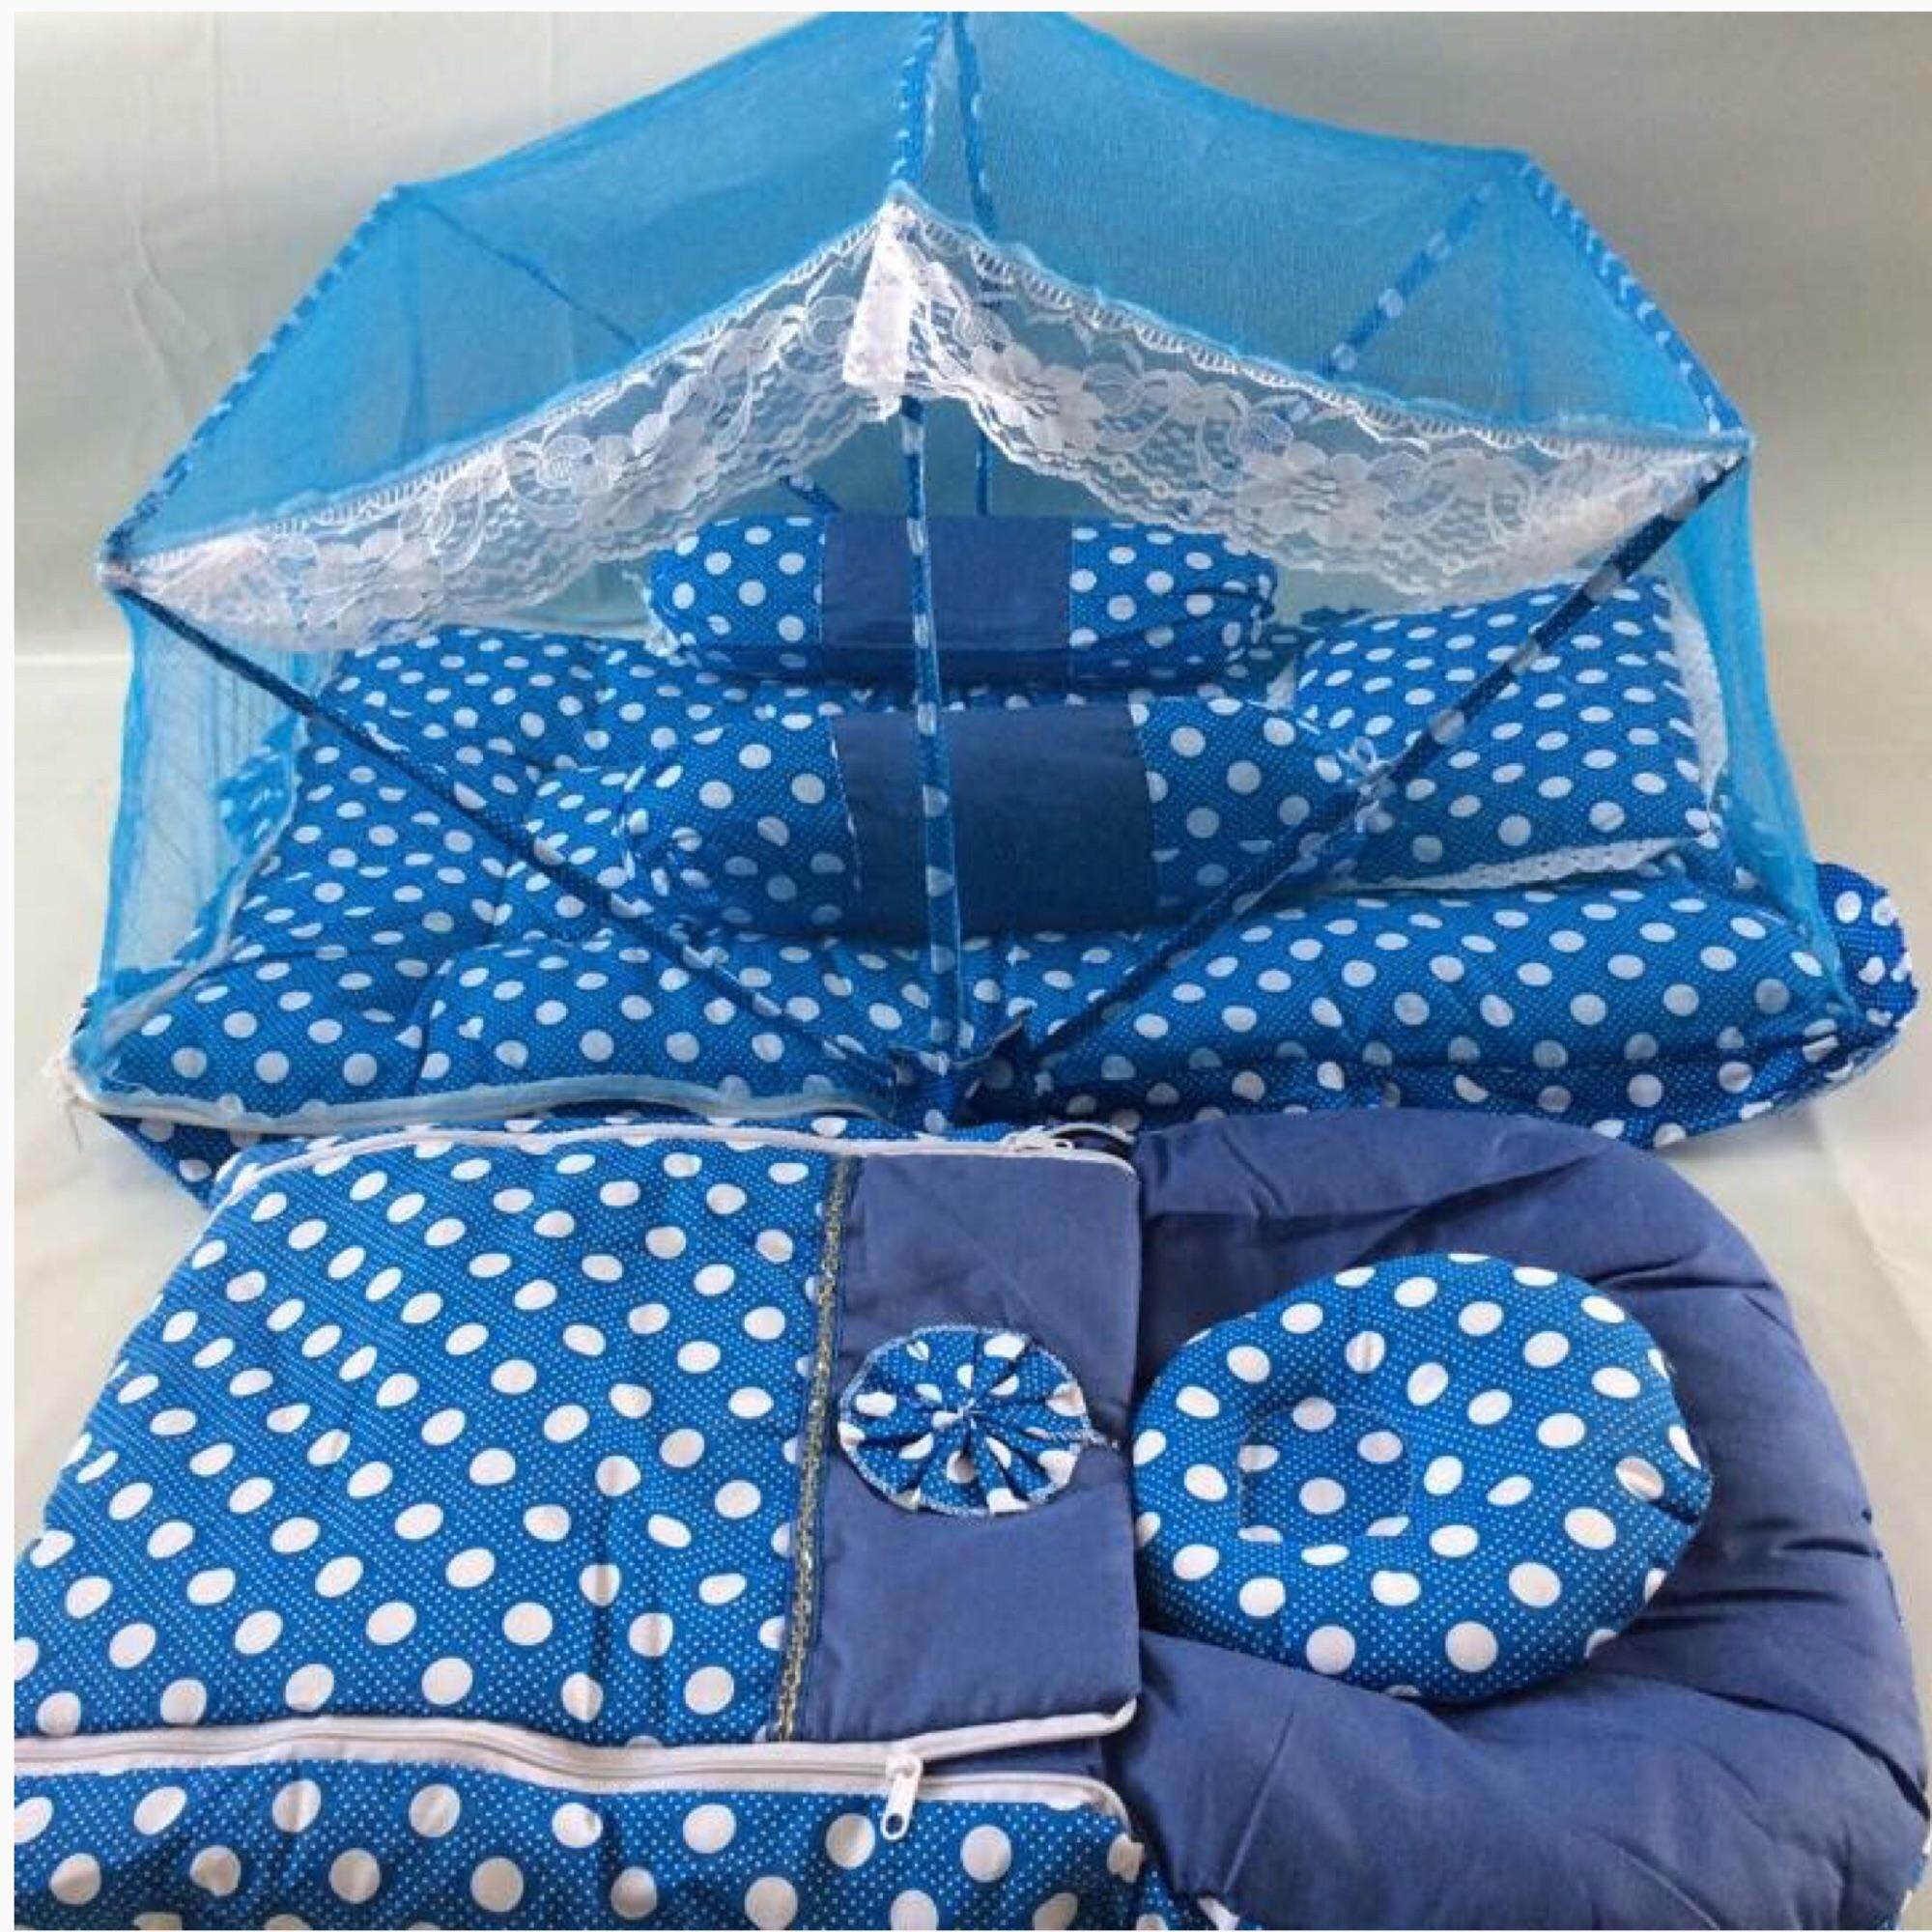 Set Tilam Kelambu Baby & Sleeping Bag By Ahza Gemilang.